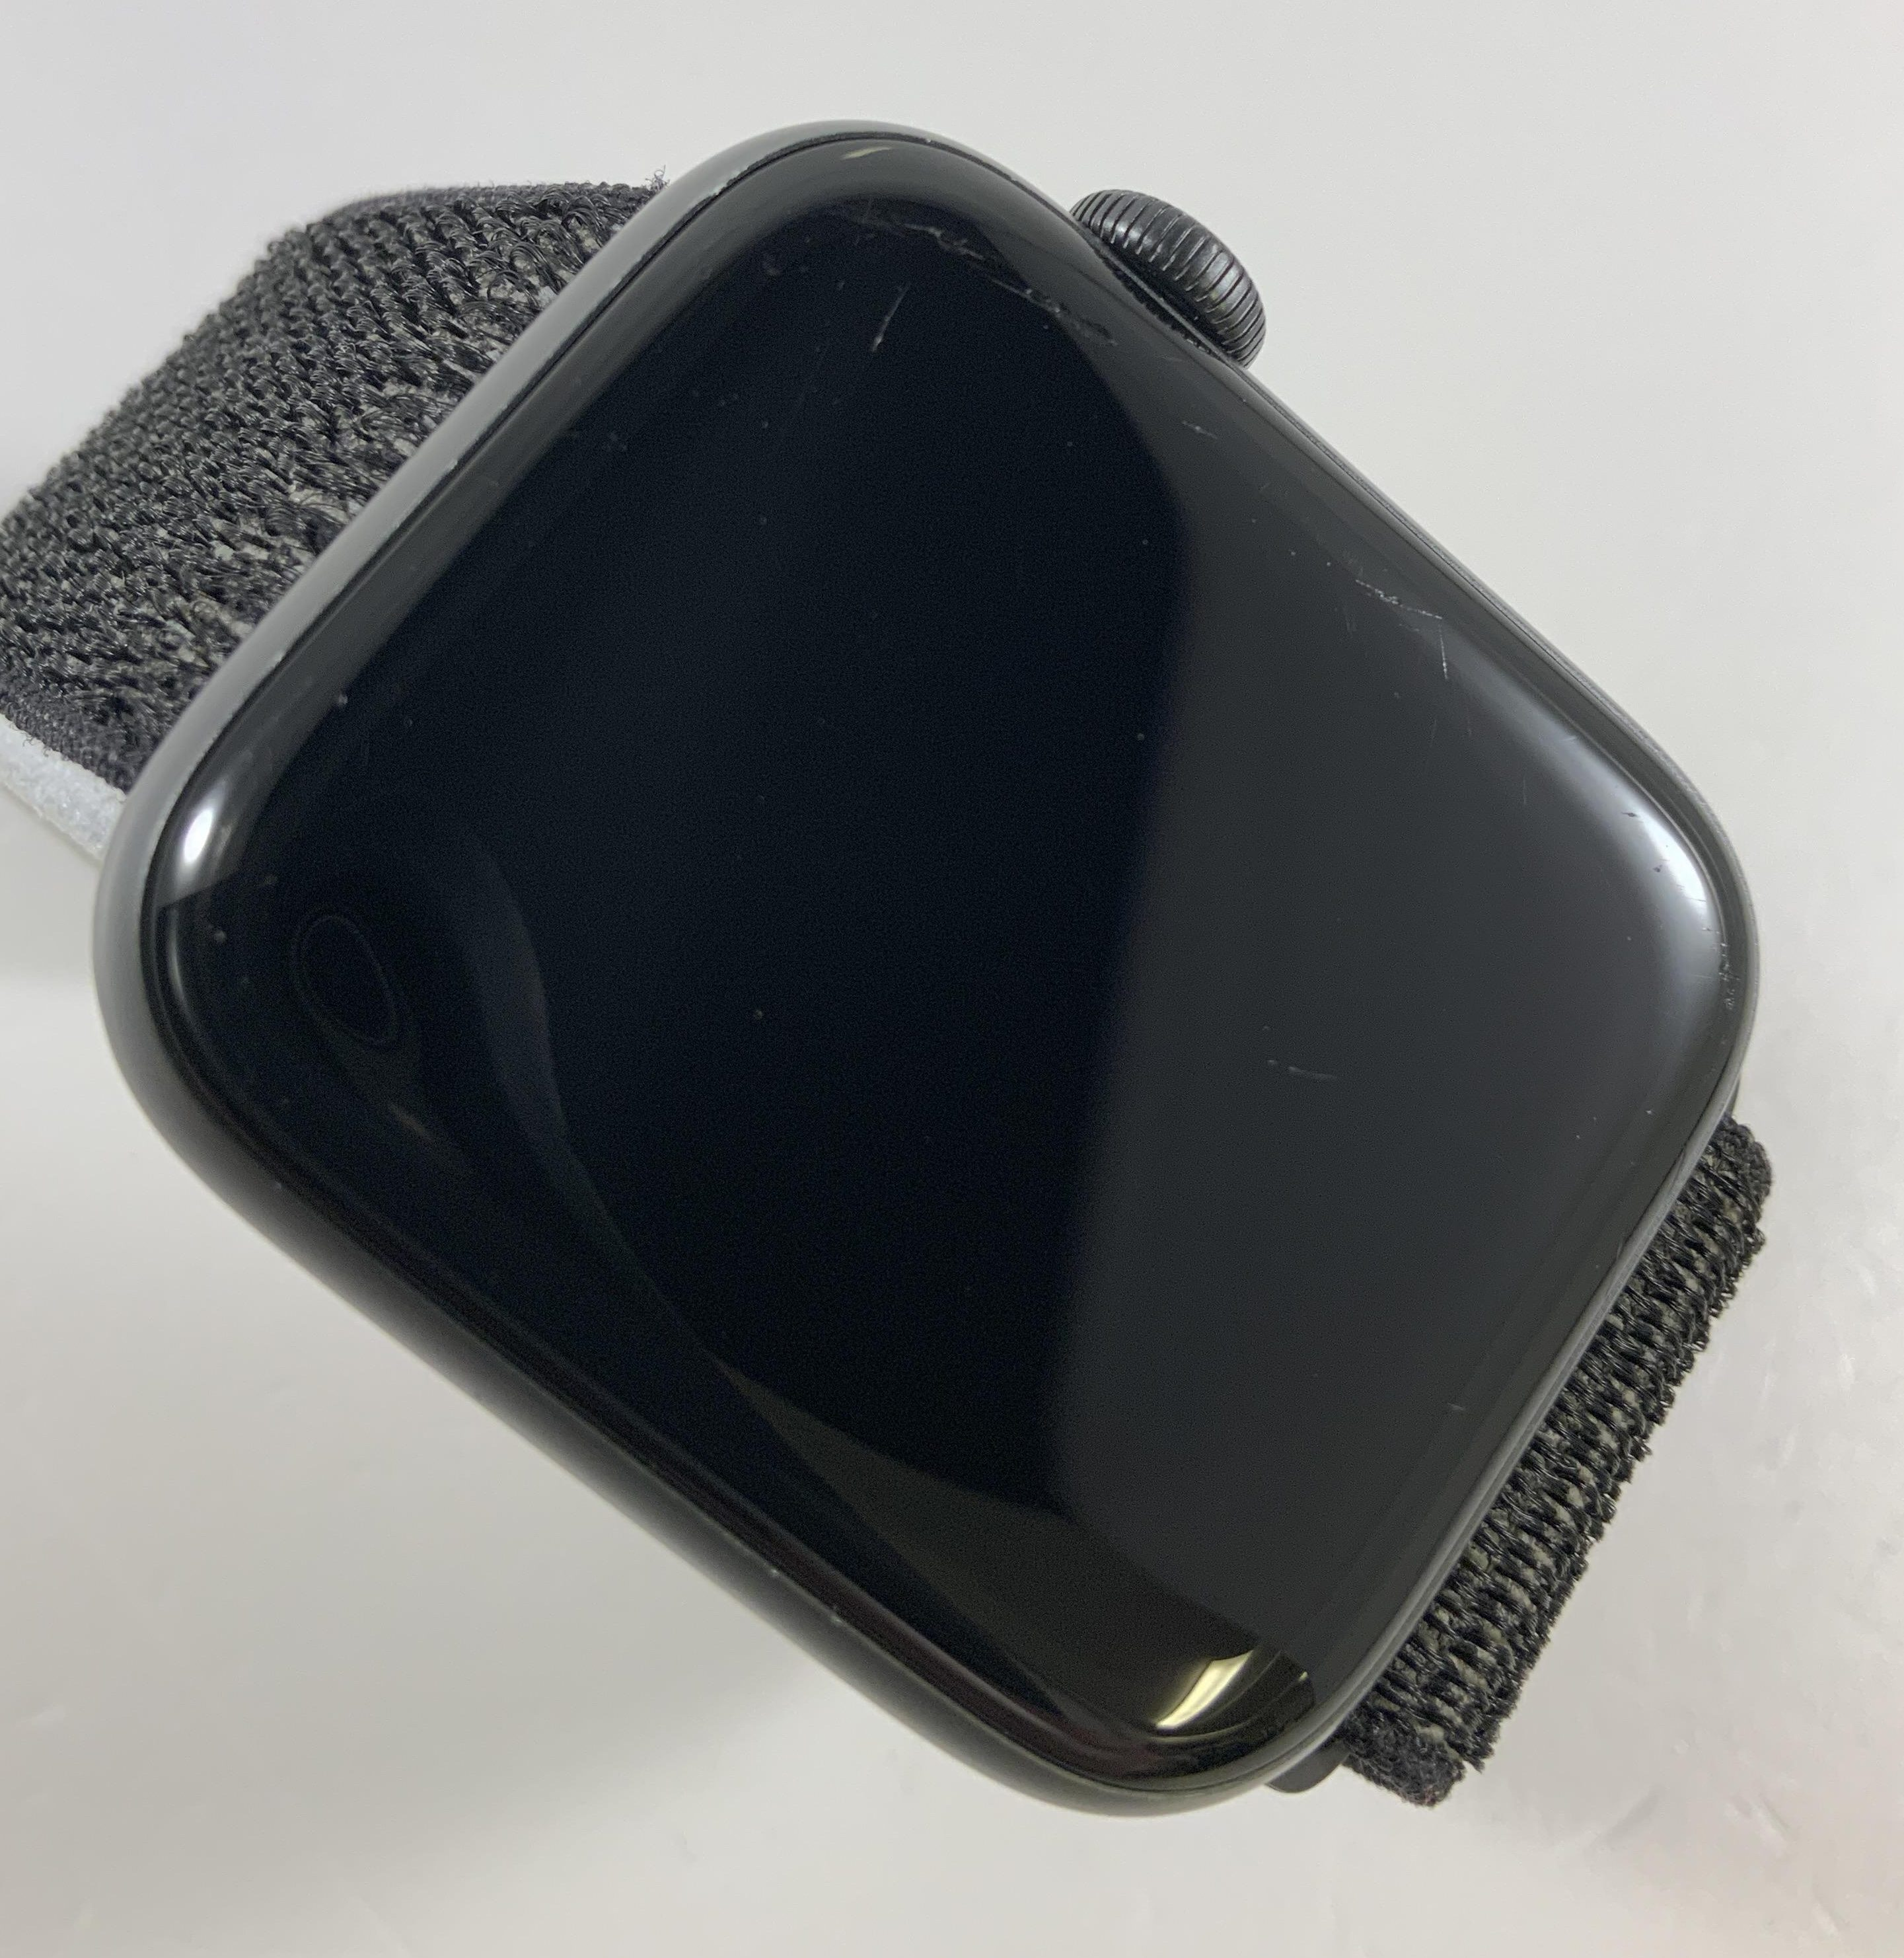 Watch Series 5 Aluminum Cellular (44mm), Space Gray, obraz 3